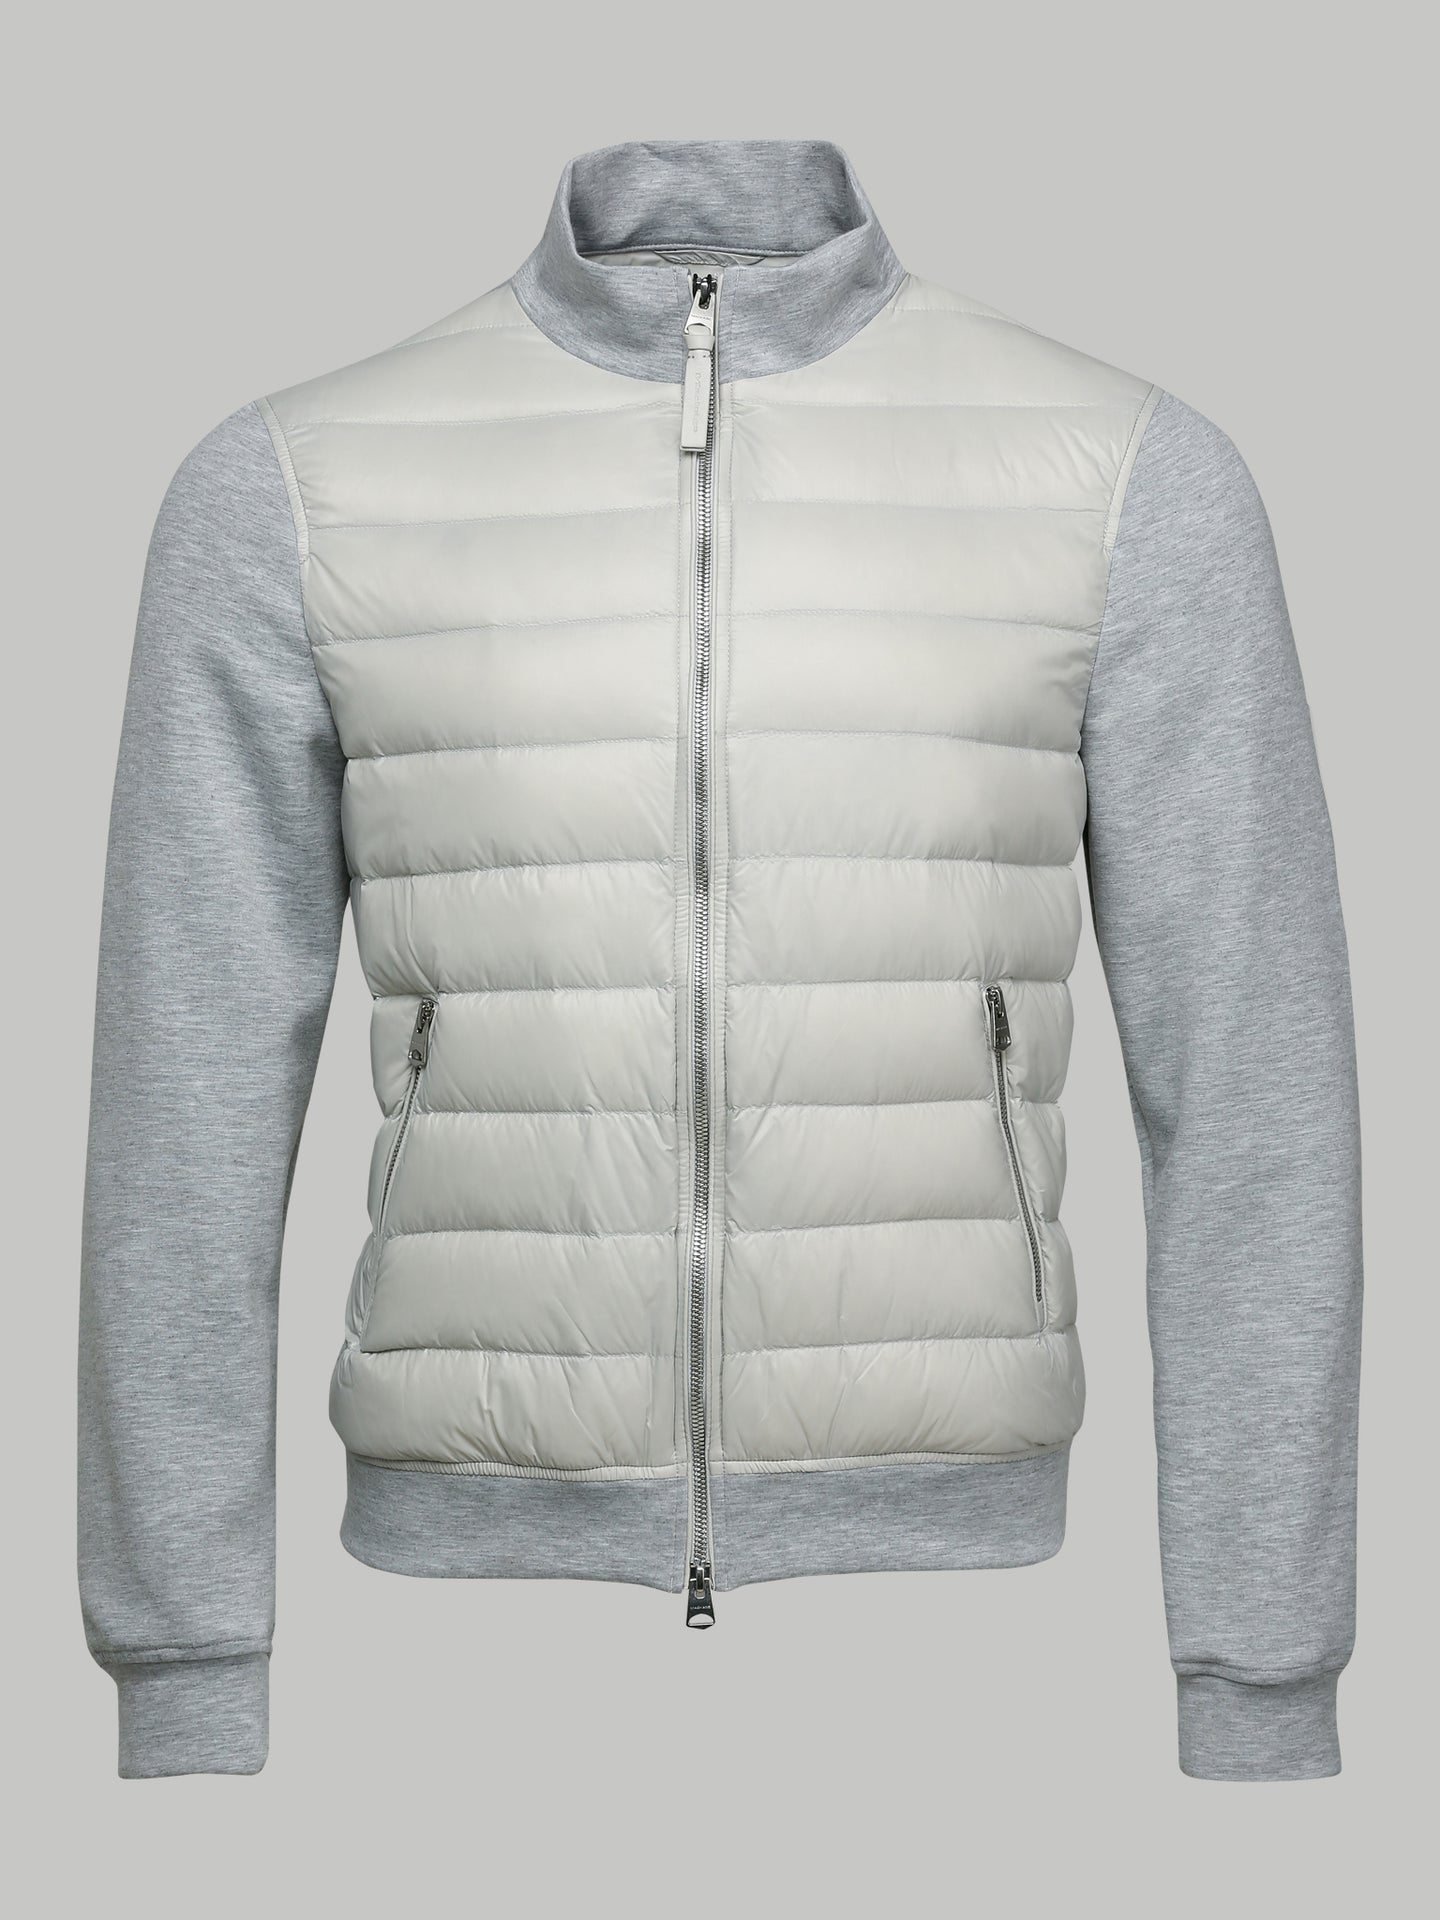 Mackage Manus Contast Bomber (Grey) - Union 22